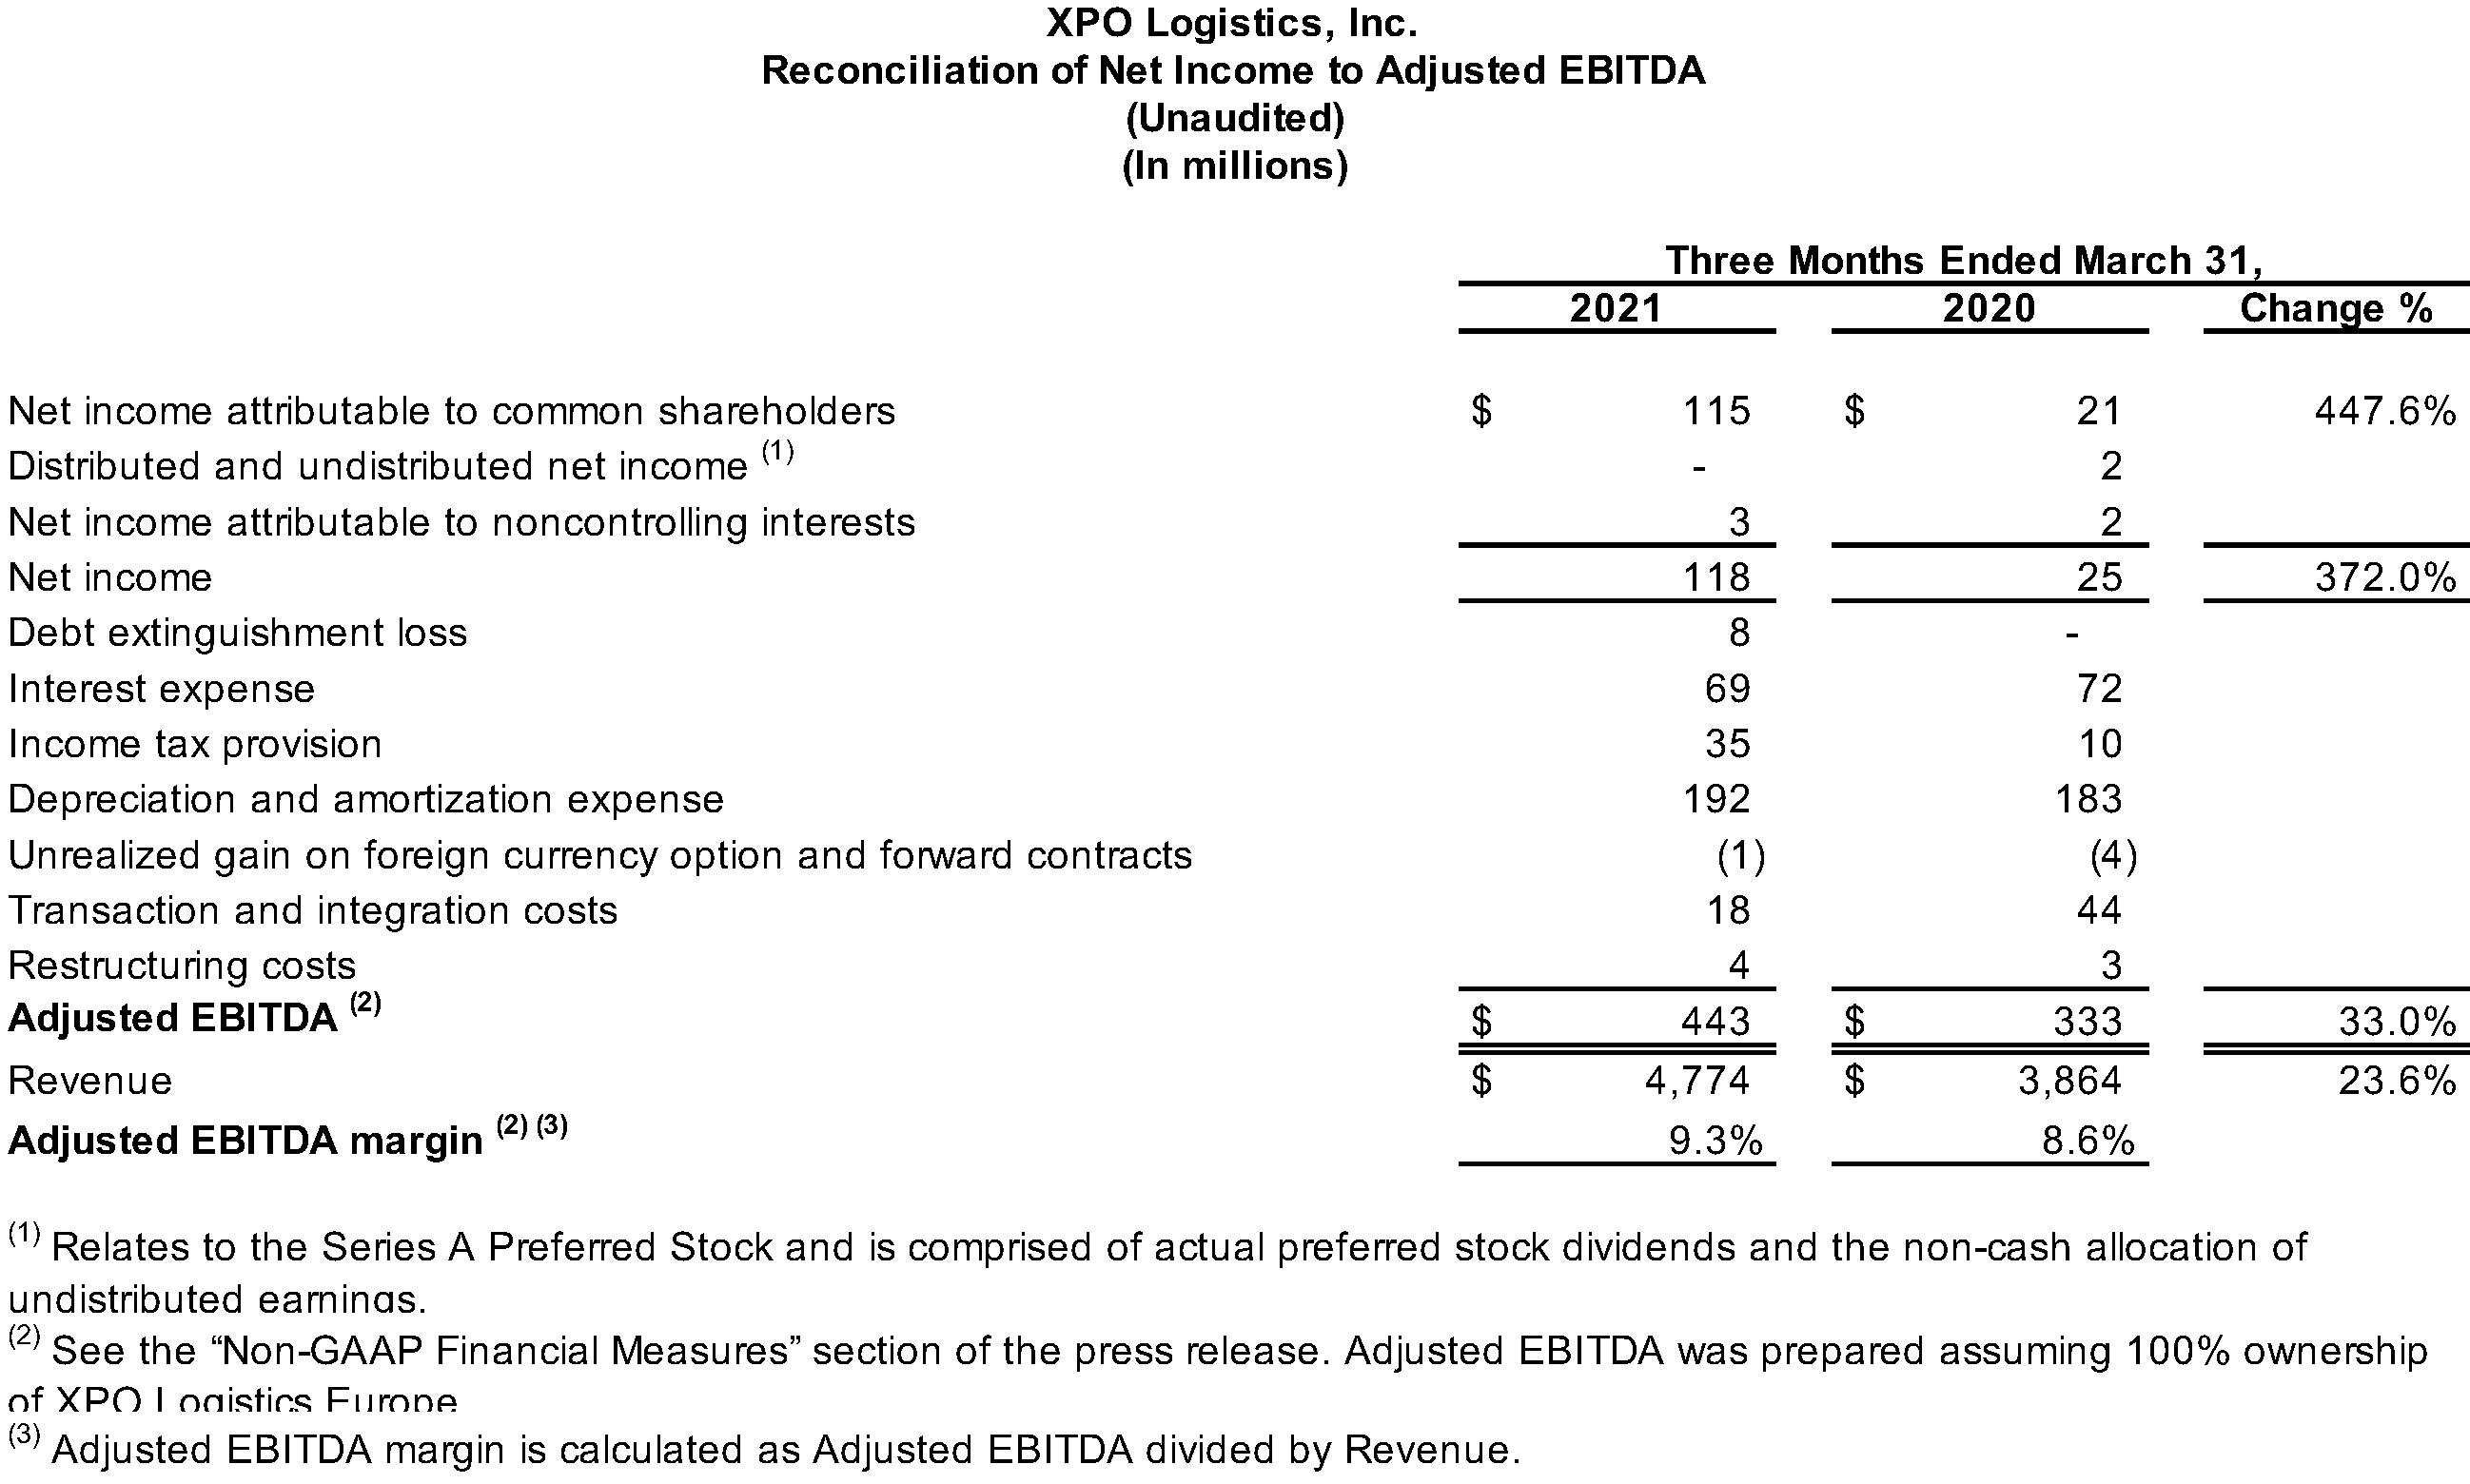 Reconciliation of Net Income to Adjusted EBITDA (Unaudited)